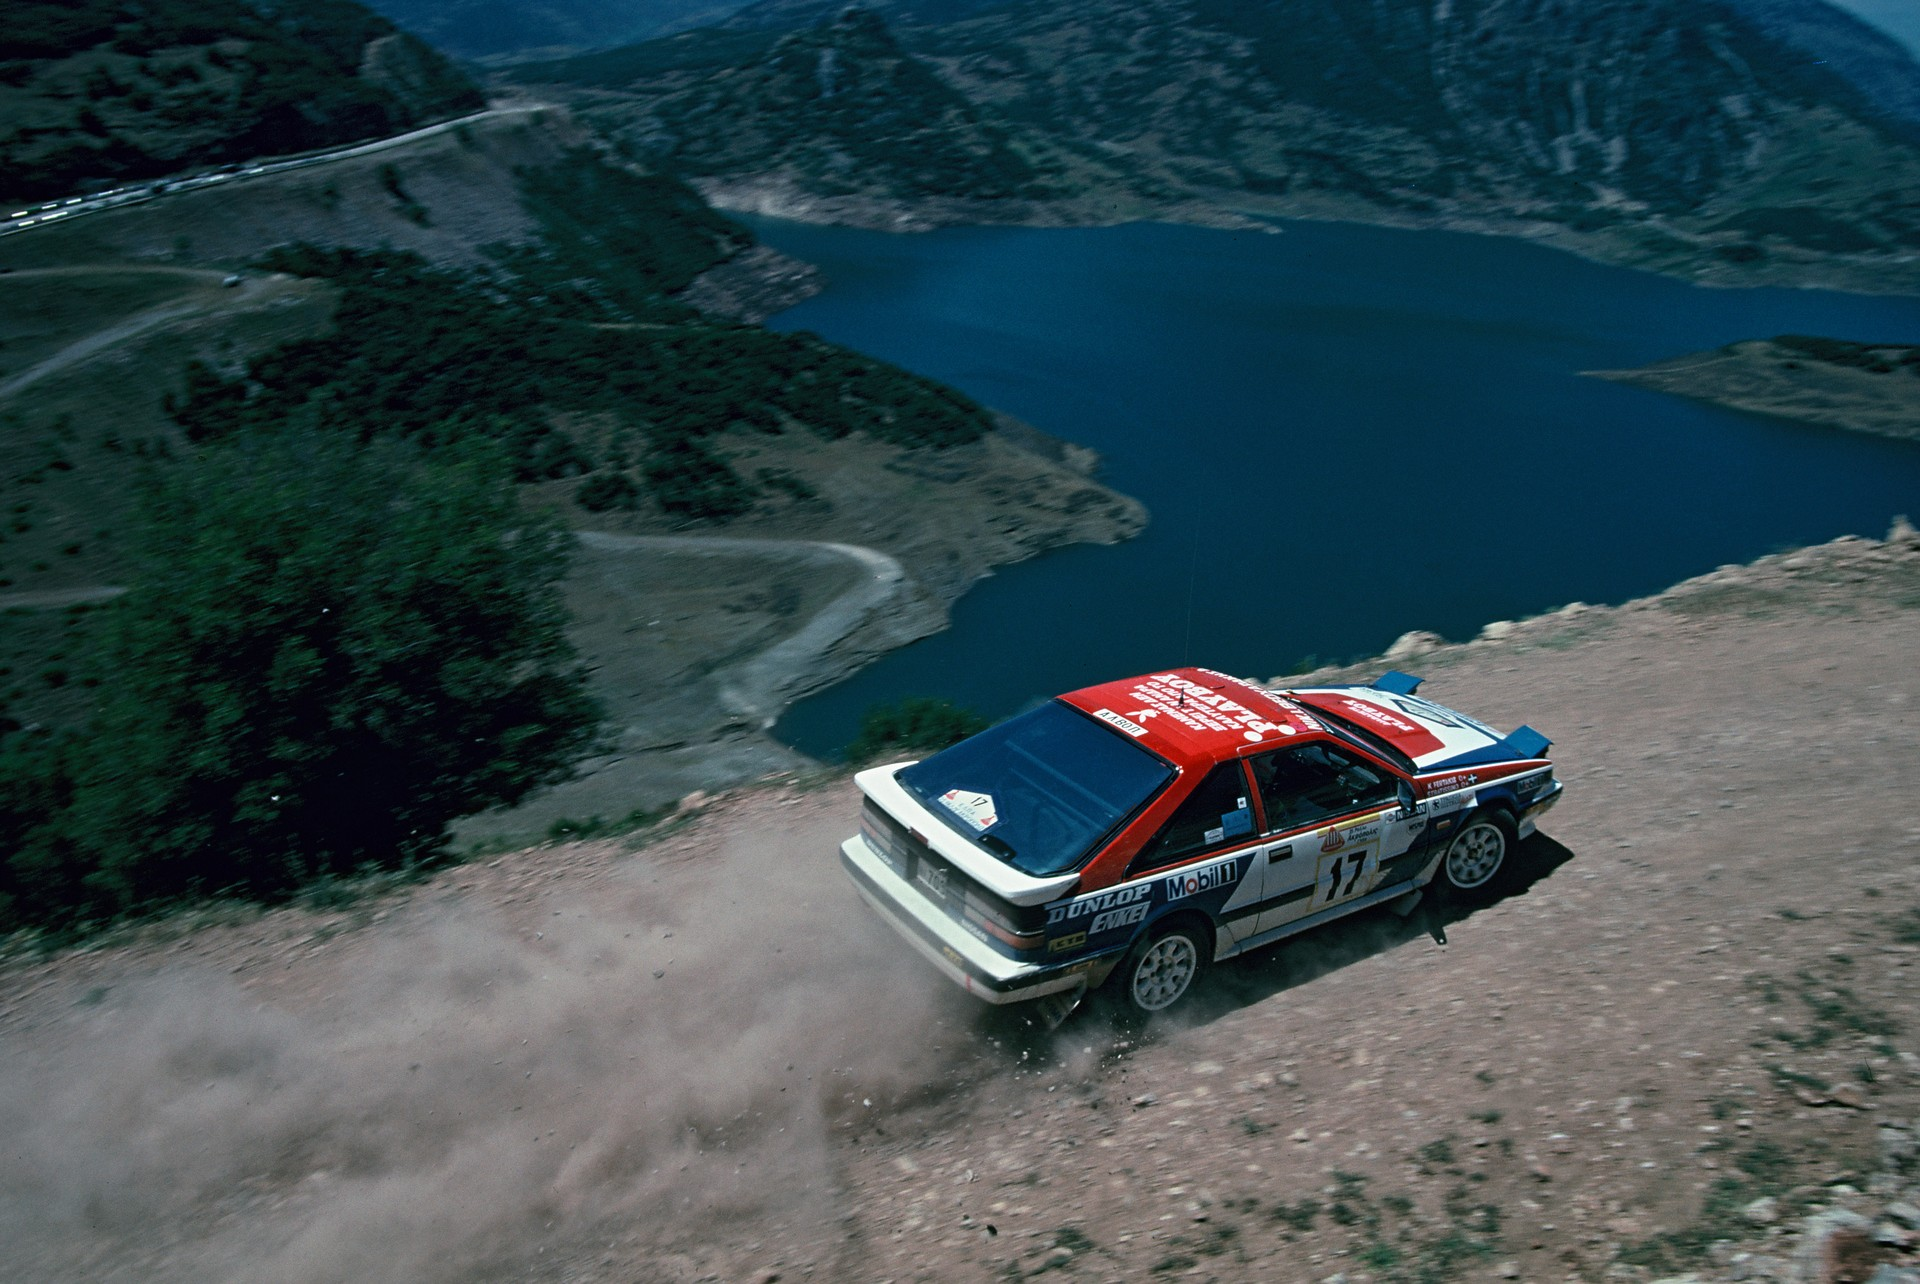 Acropolis Rally - Stratissino-Fertakis